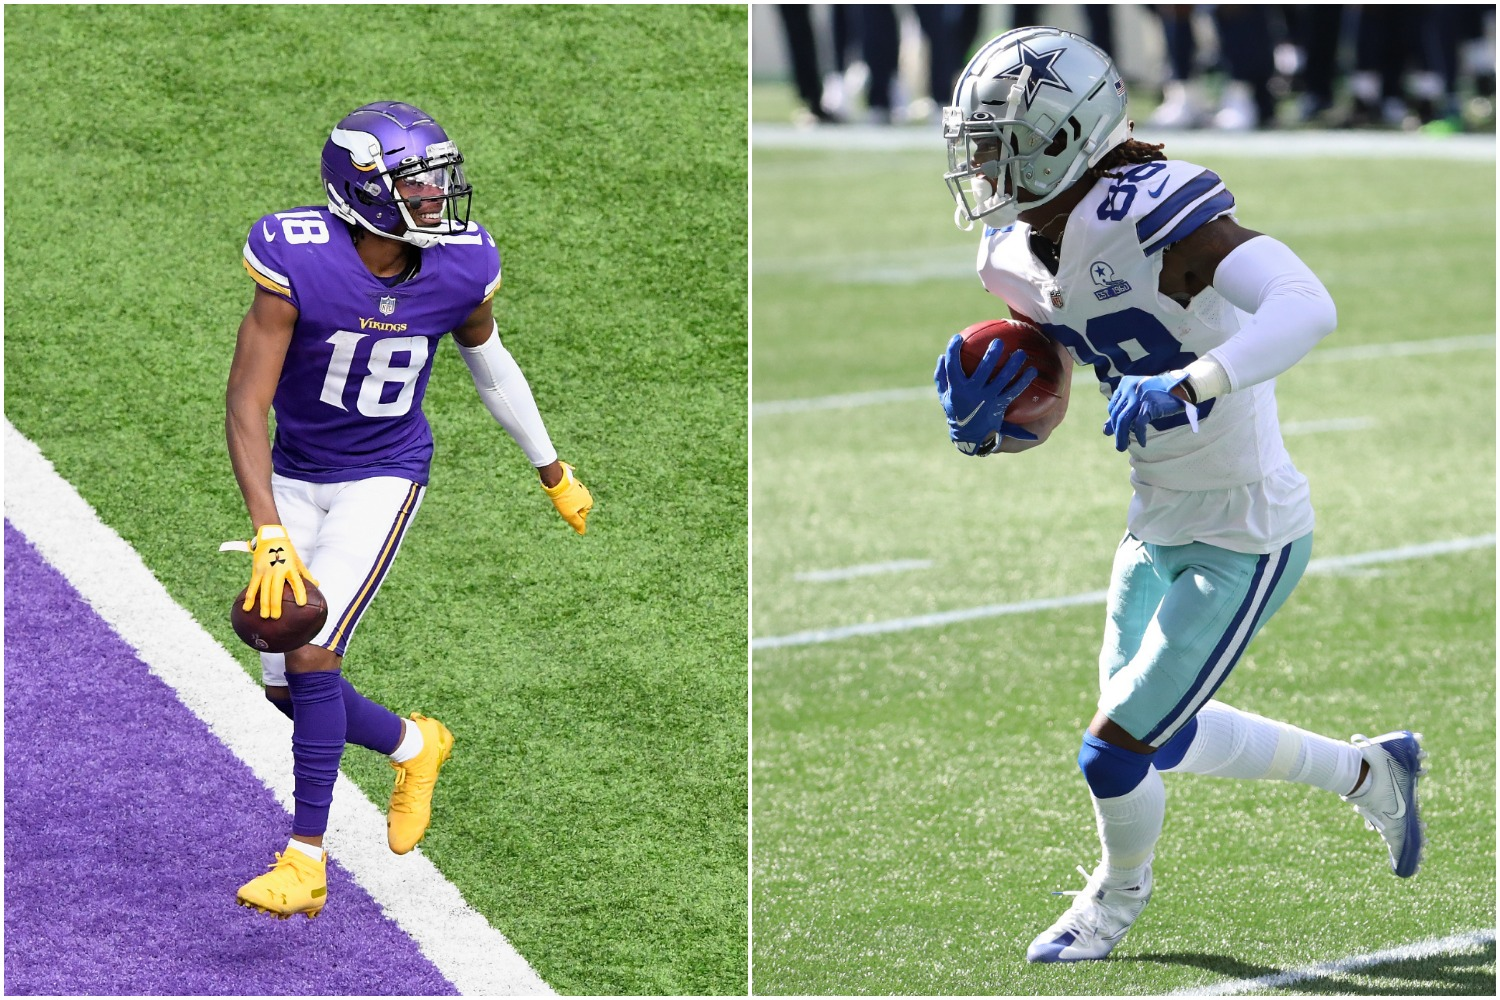 CeeDee Lamb vs. Justin Jefferson — Who Is the Better Rookie Receiver?